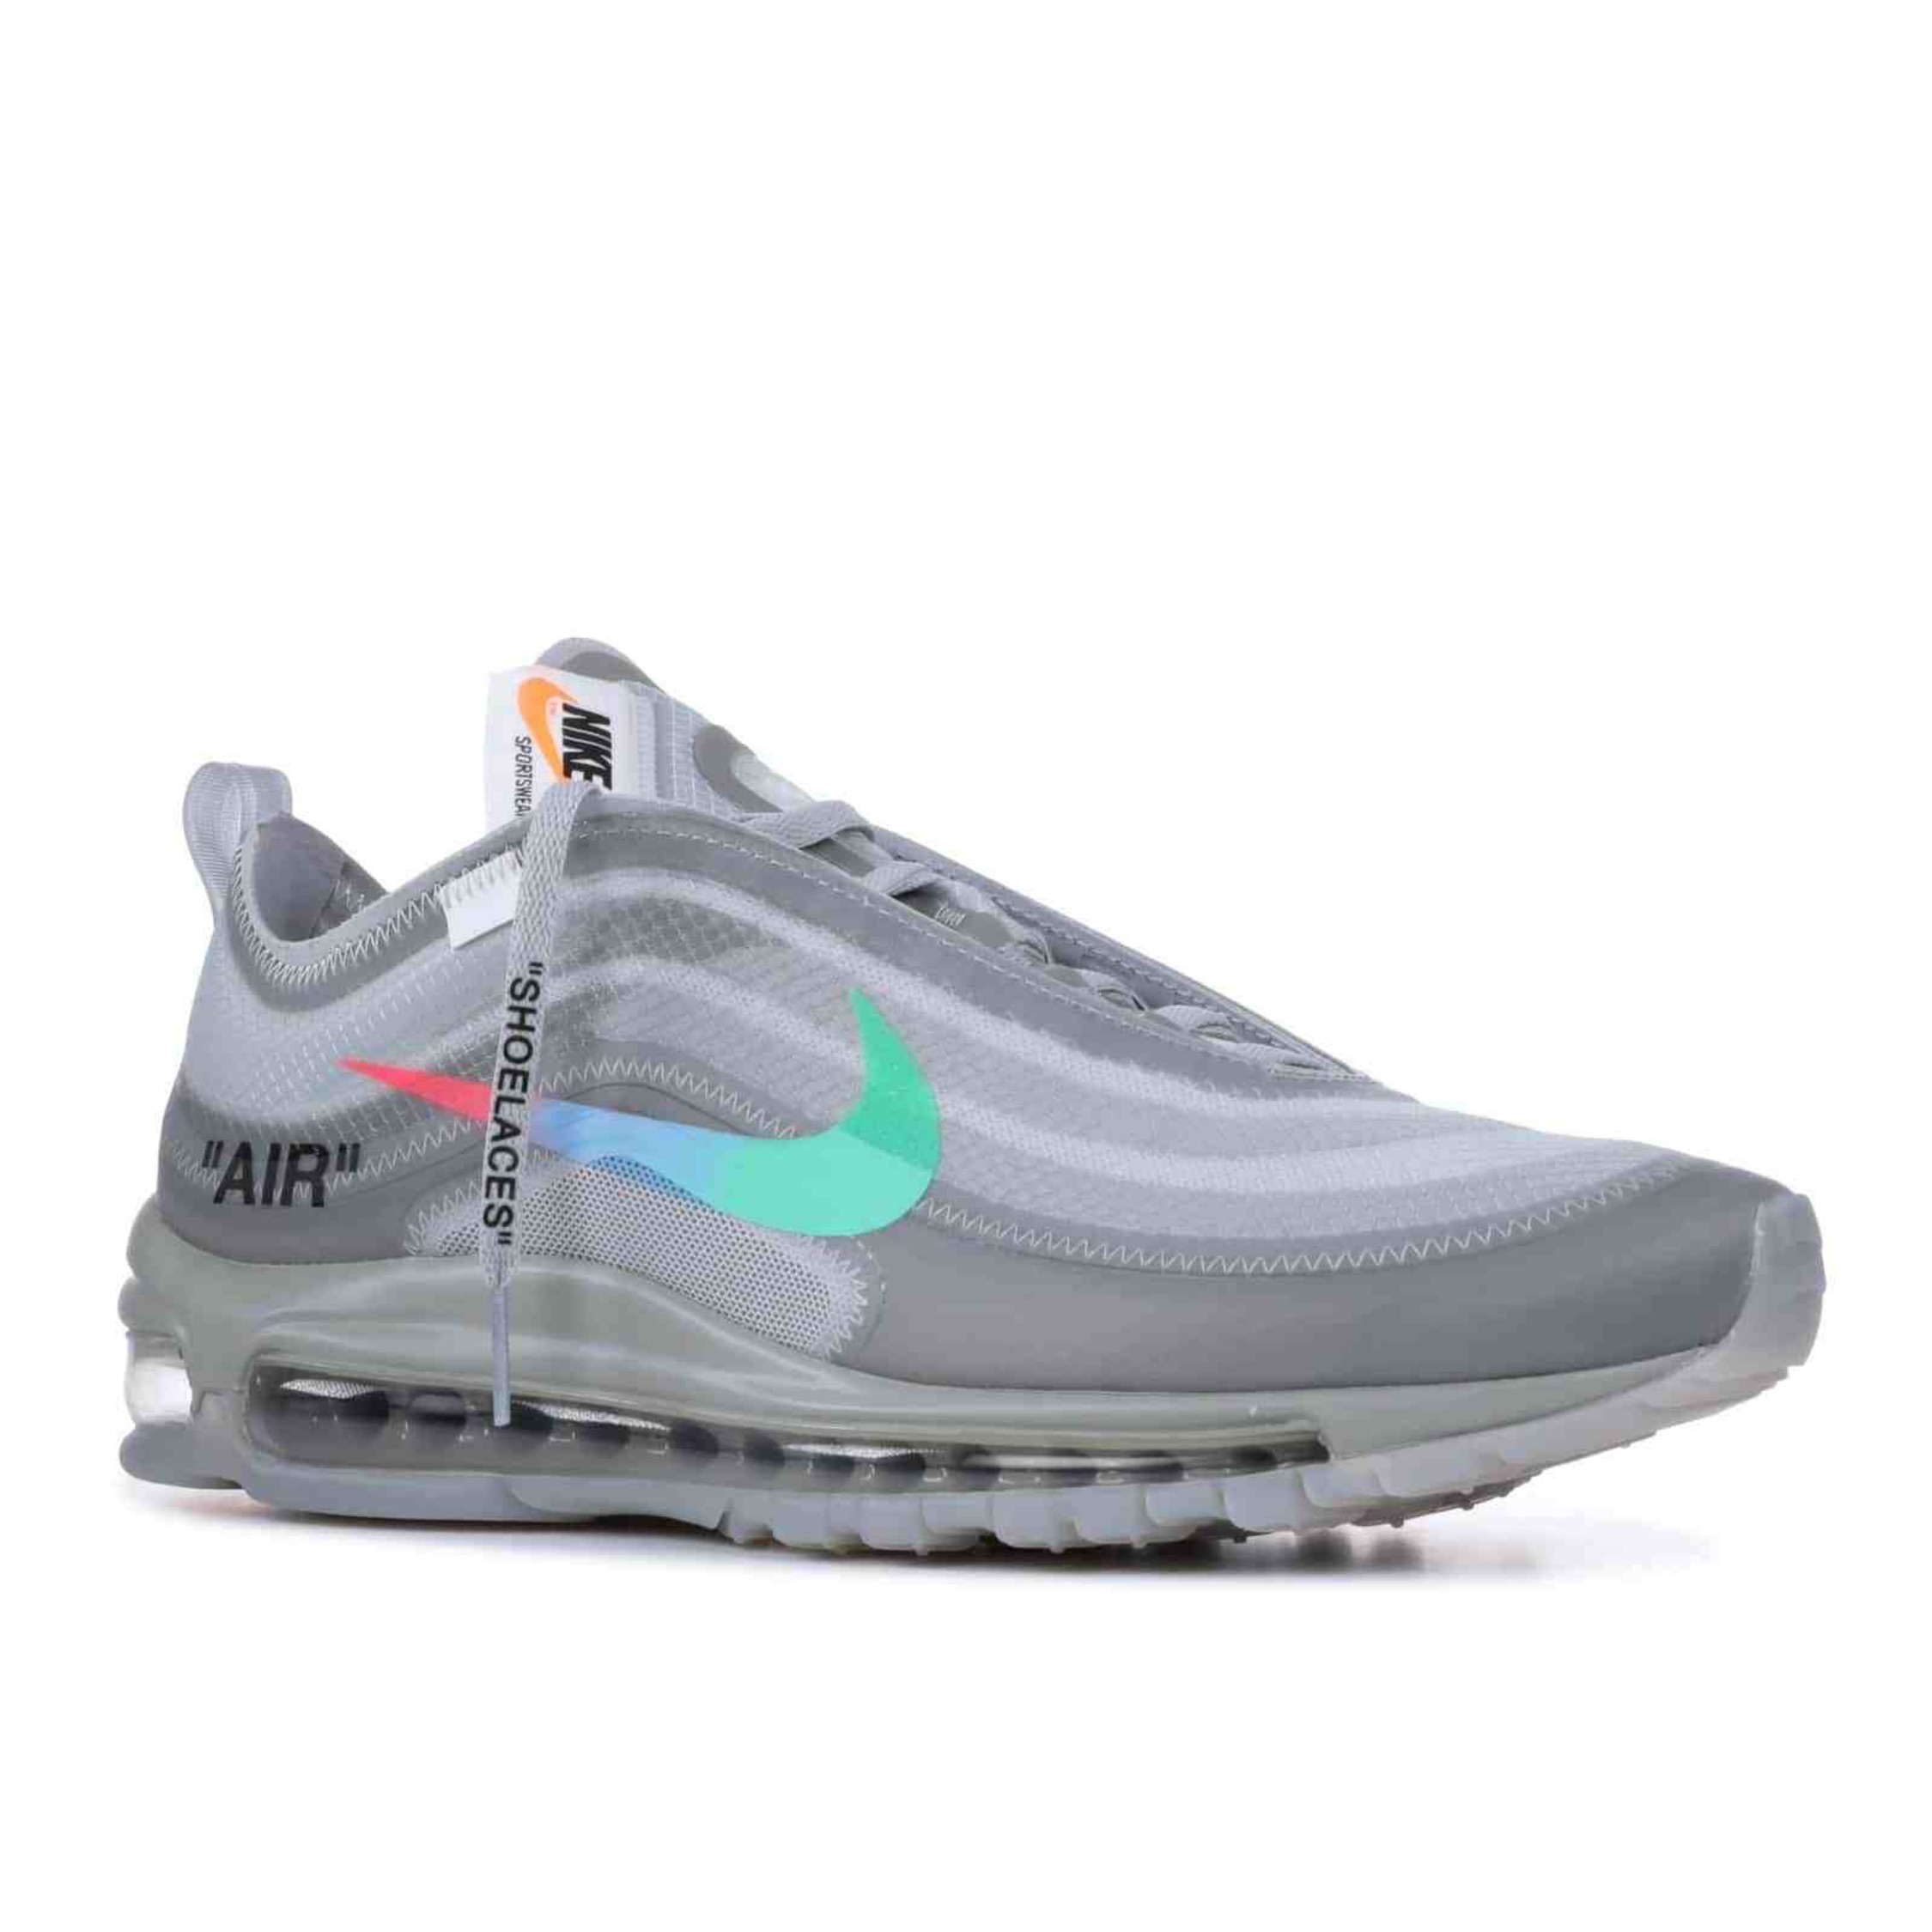 Nike Sportswear AIR MAX COMMAND Sneakers whitewolf grey